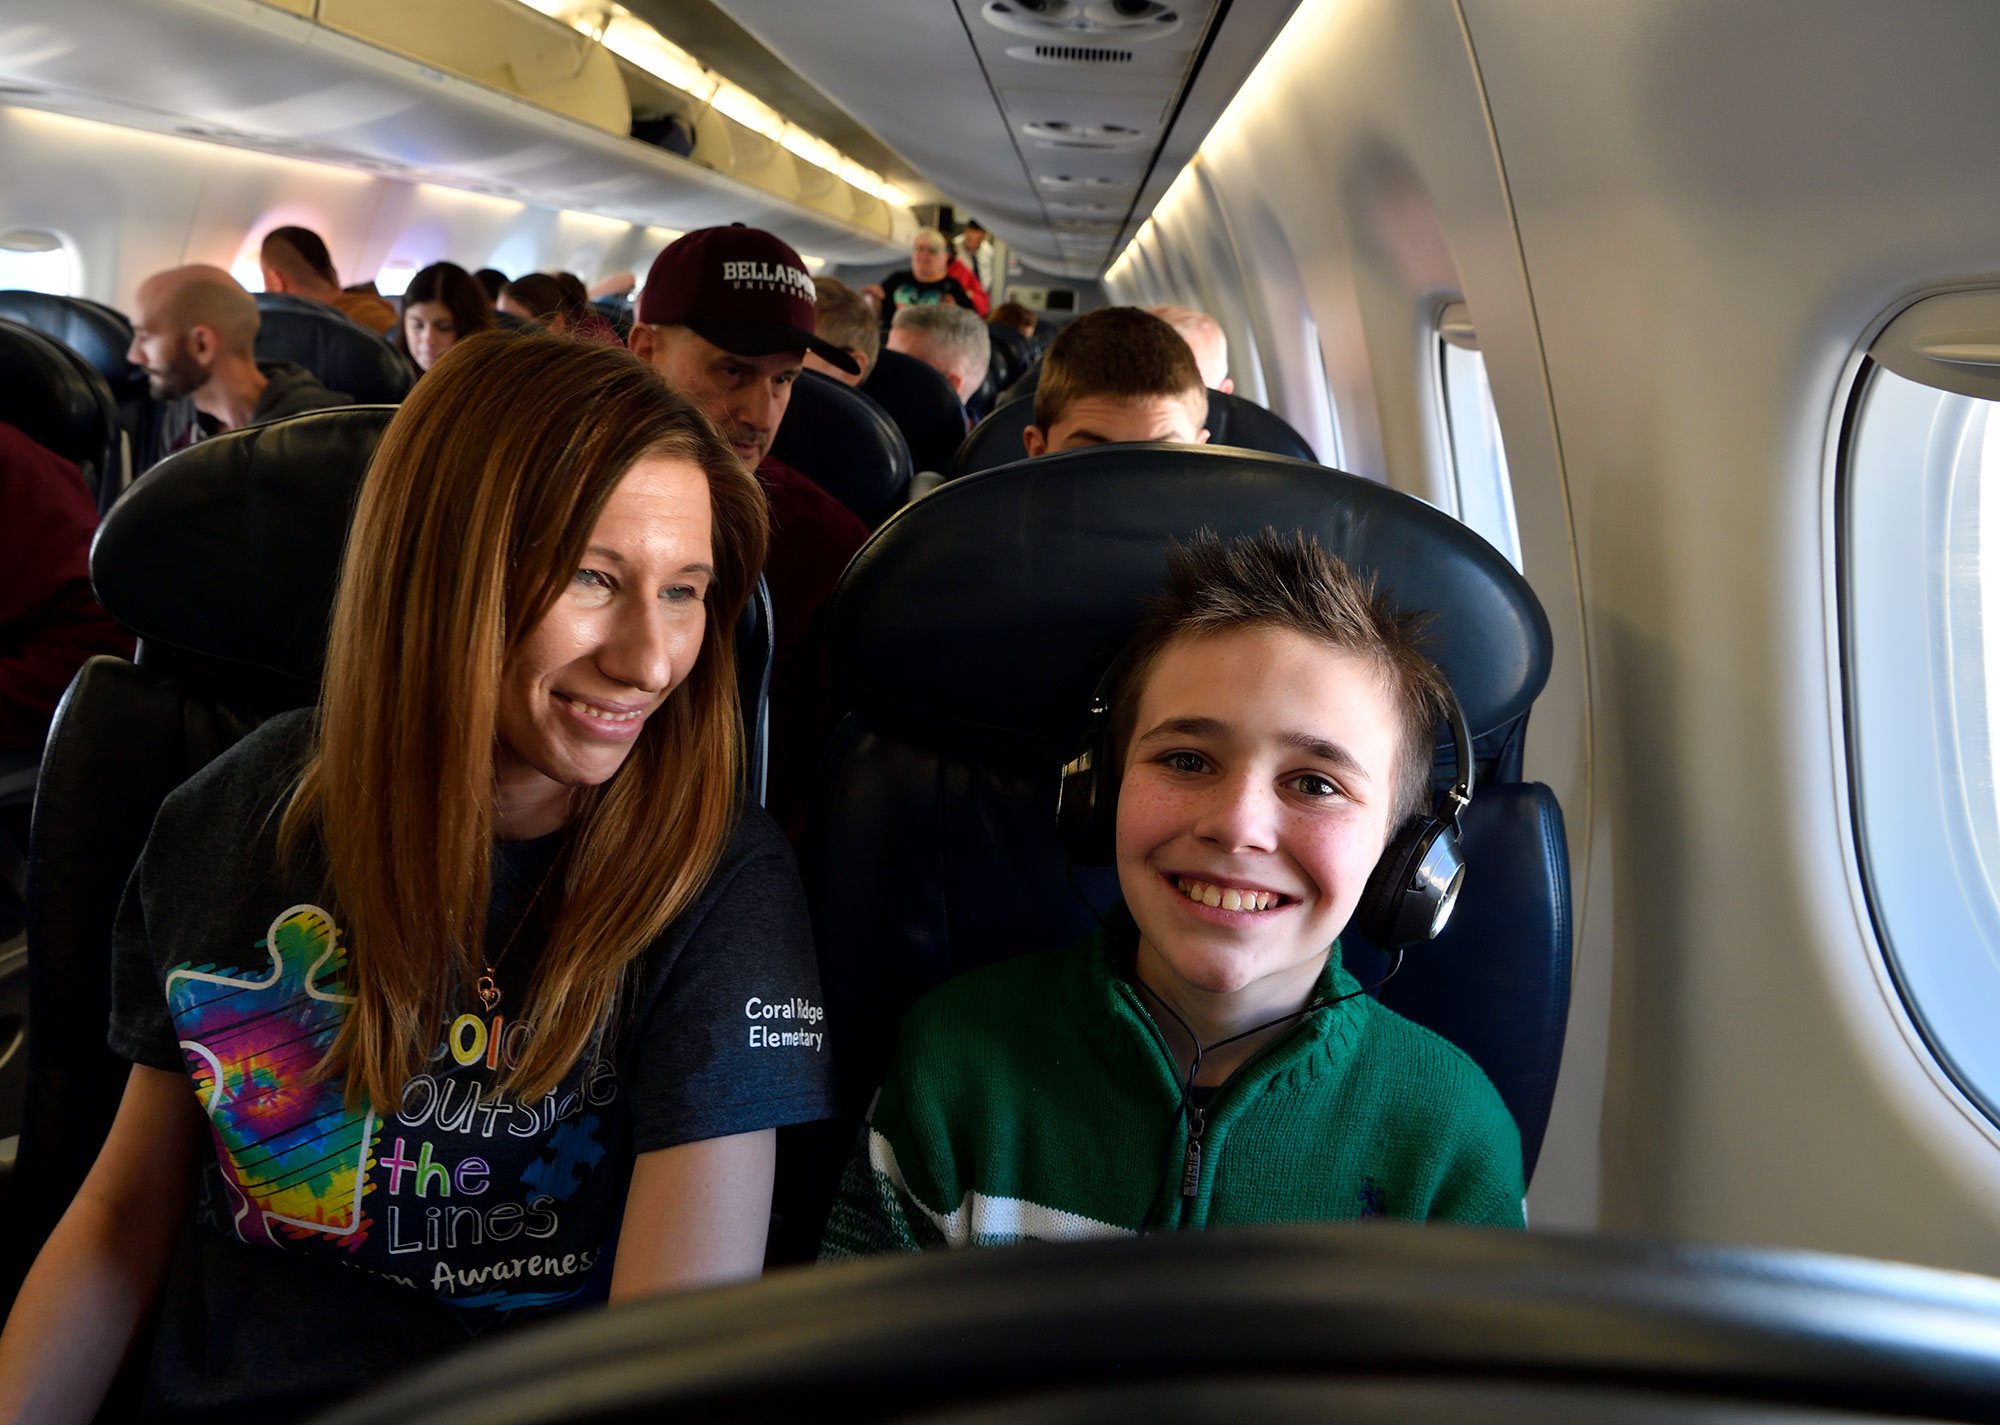 It's Cool to Fly: American Airlines program helps kids with autism soar to new heights